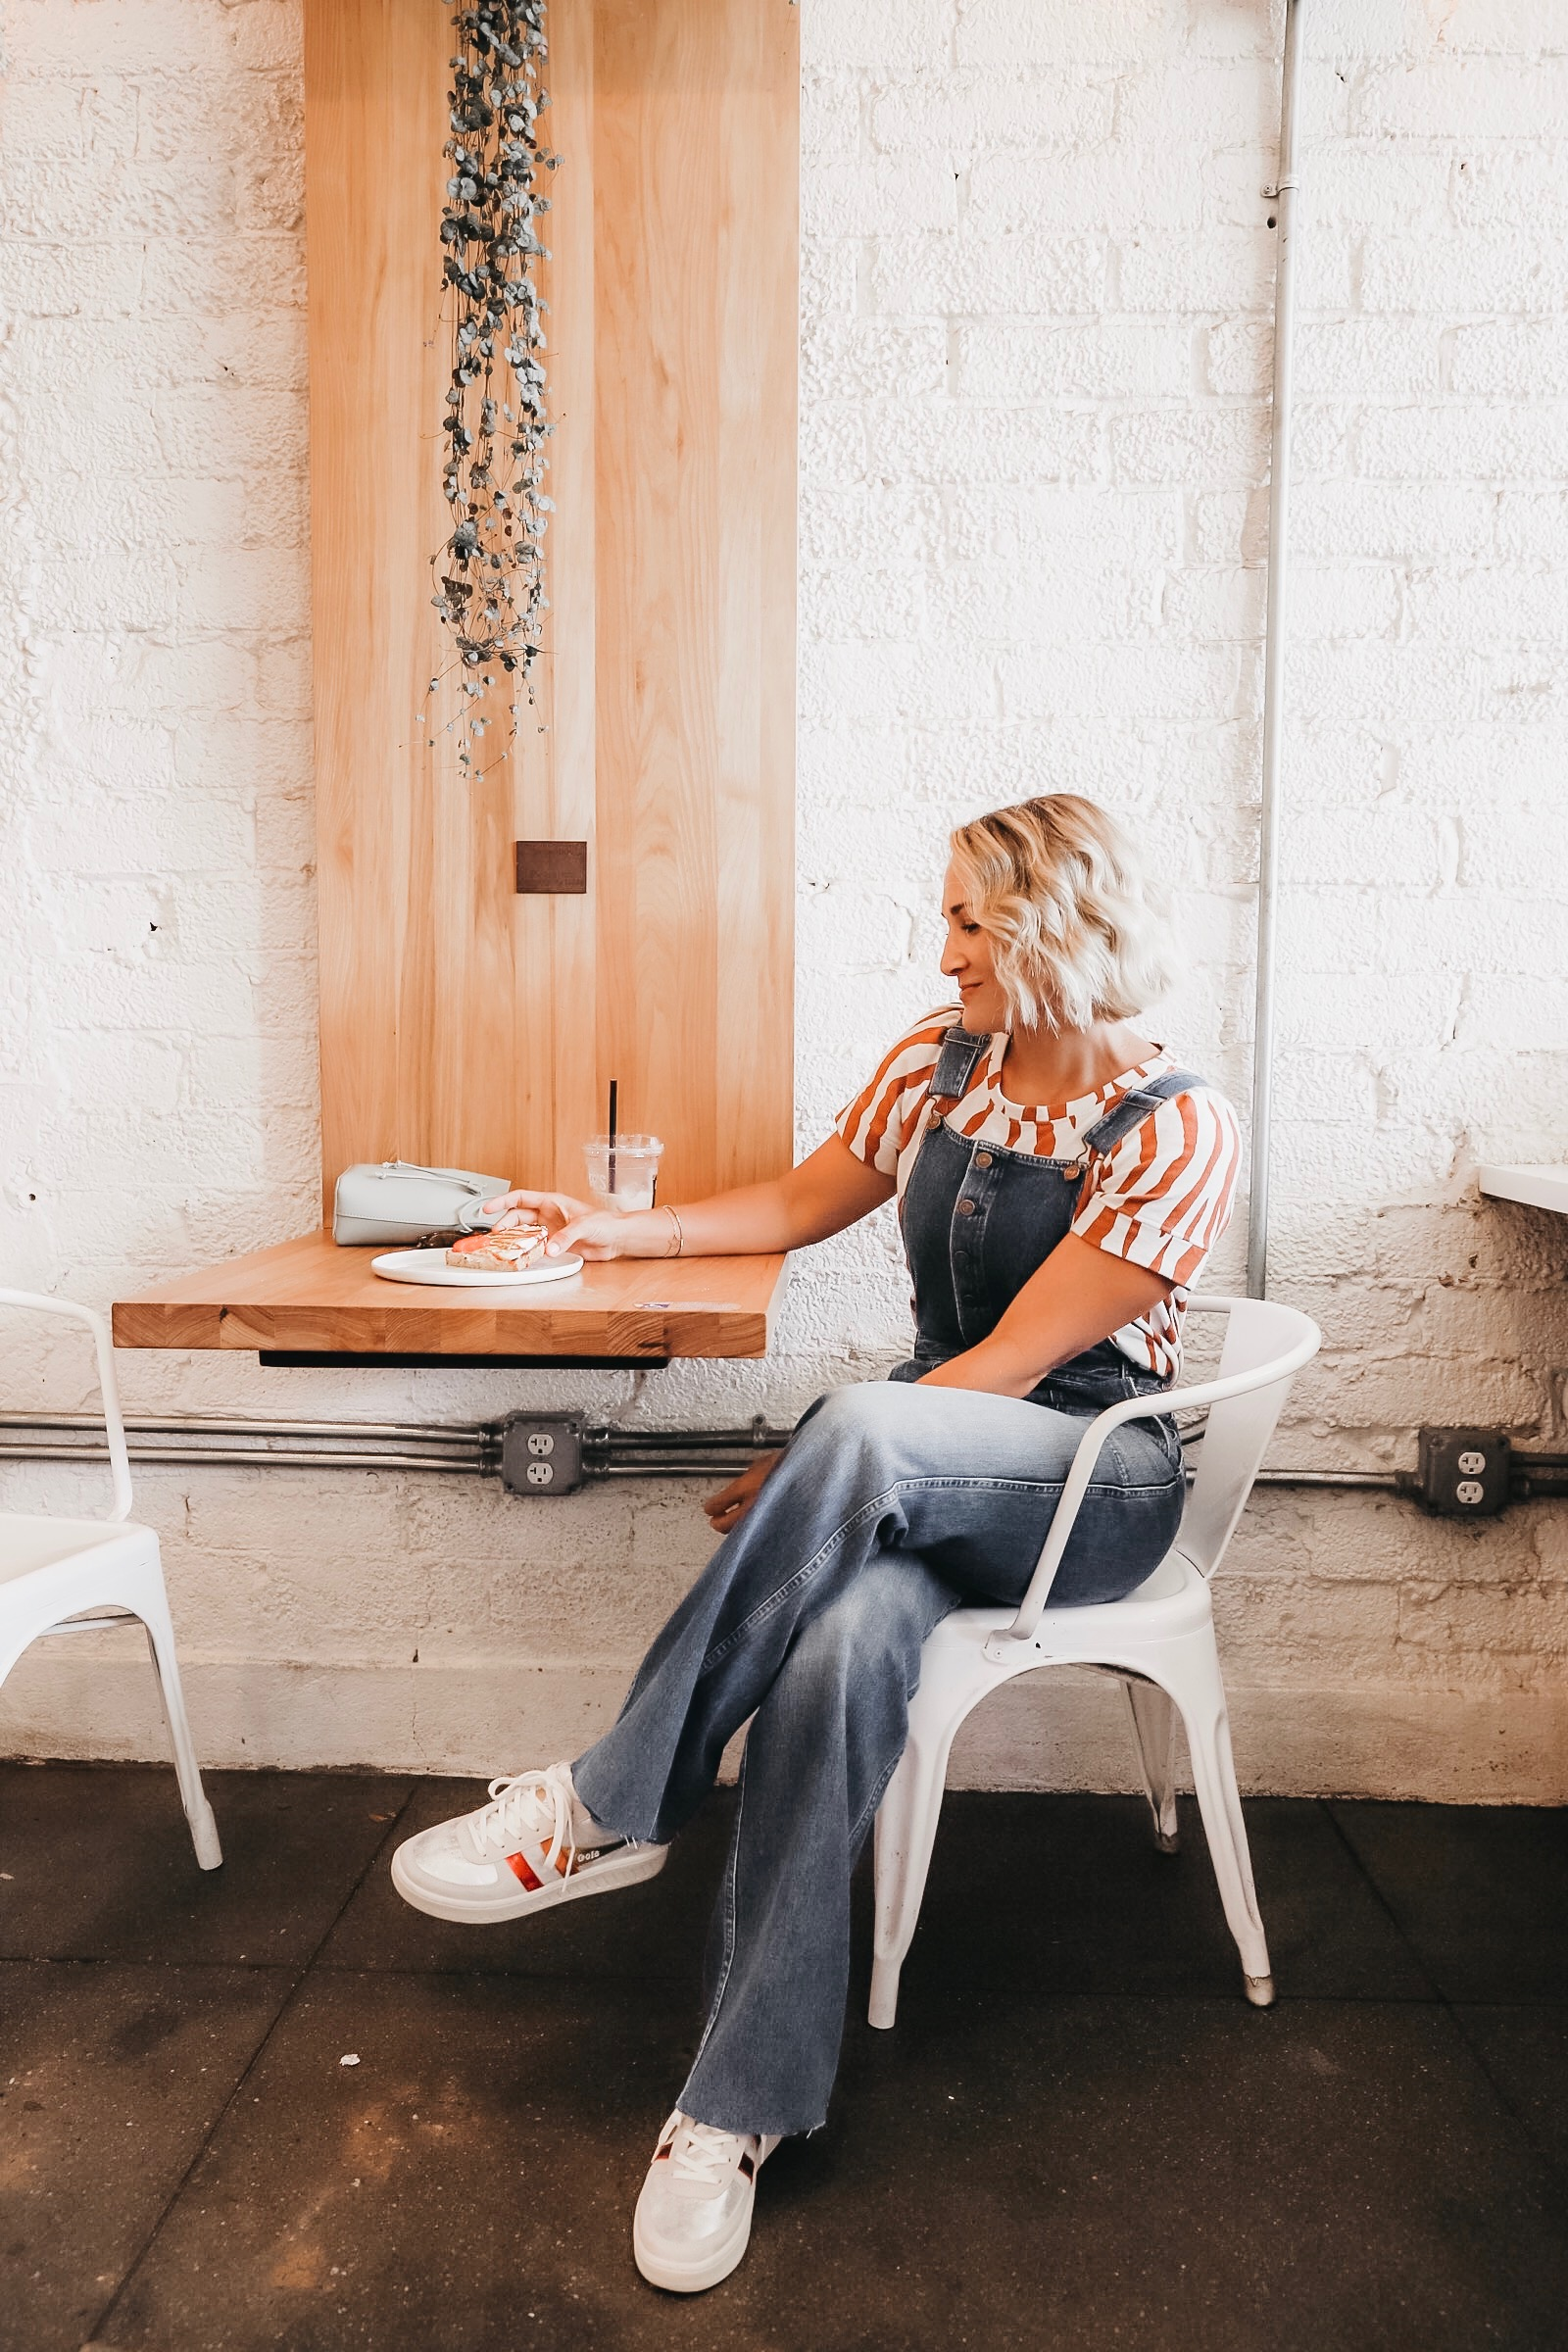 Featured on Chrissy Power's Blog: The Life Changing Benefits of Intuitive Eating by Casey Bonano of Dallas Nutritional Counseling #dallasnutritionalcounseling #chrissyjpowers #chrissypowers #motherhood #intuitiveeating #intuitiveeatingofficial #intuitiveeatingjourney #allbodiesaregoodbodies #marriagetherapist #familytherapist #thefoodfreedomguide